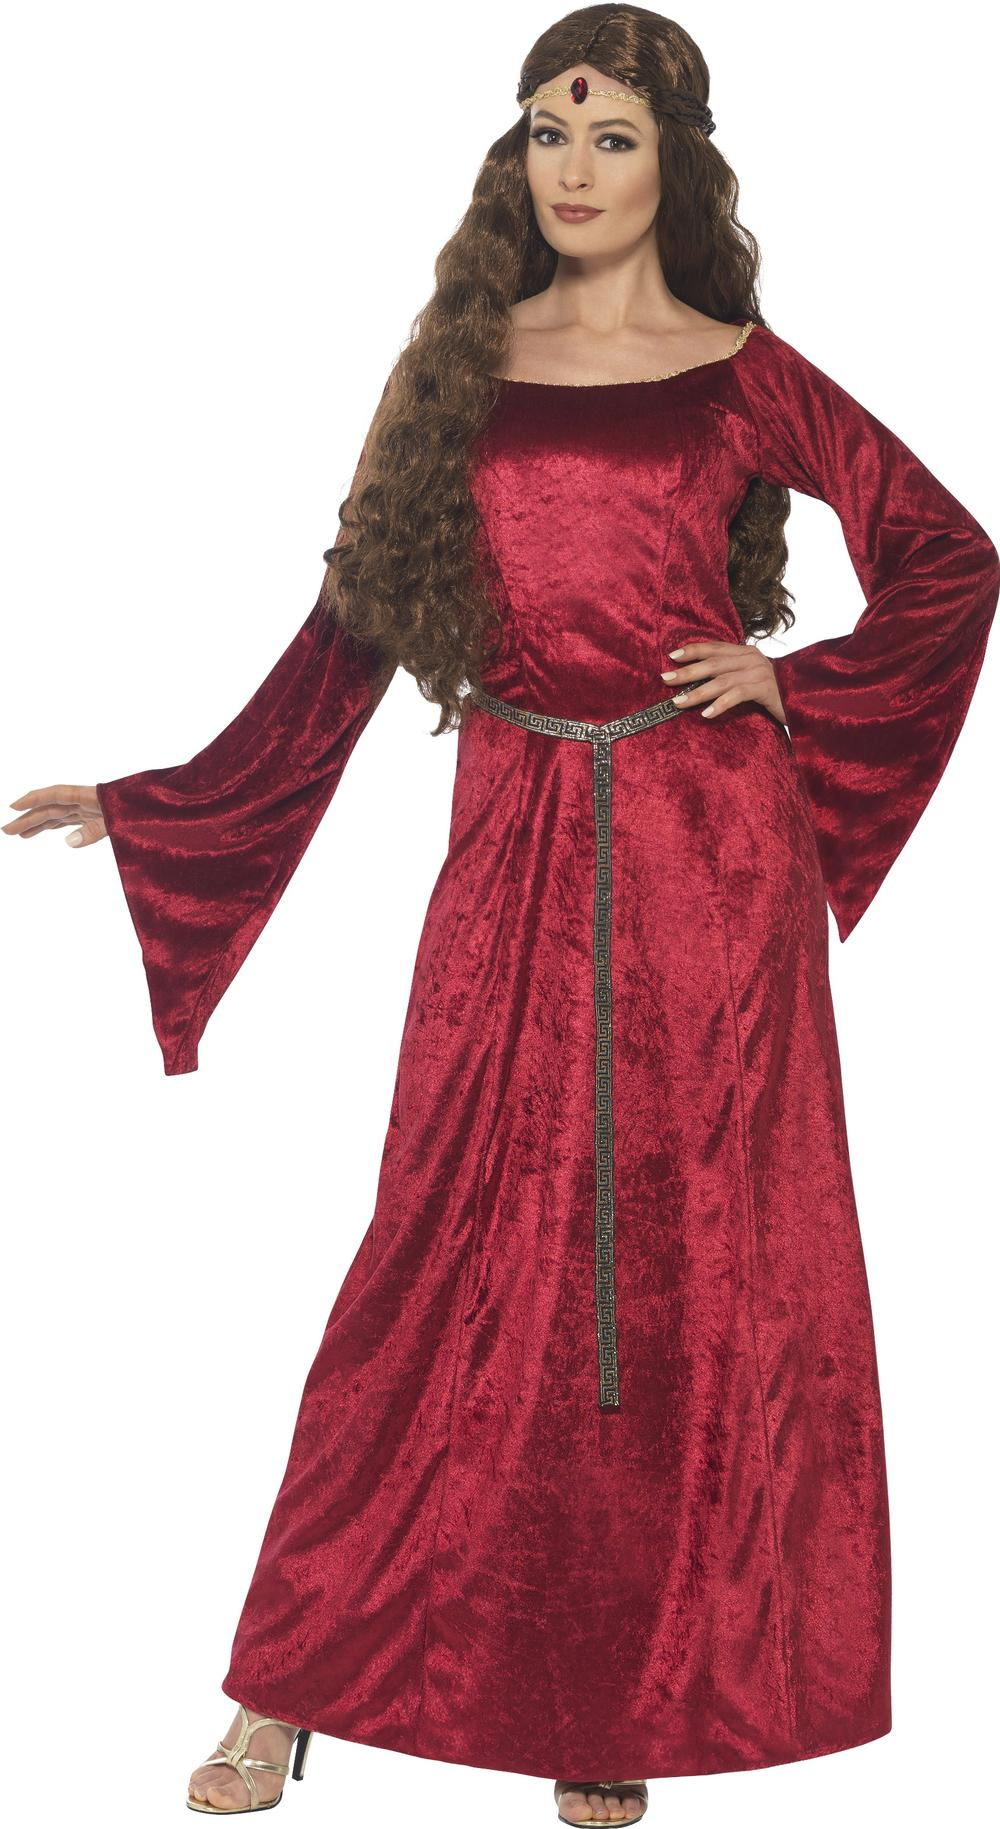 Red Medieval Maid Ladies Fancy Dress Princess Adults Marian Costume Outfit New